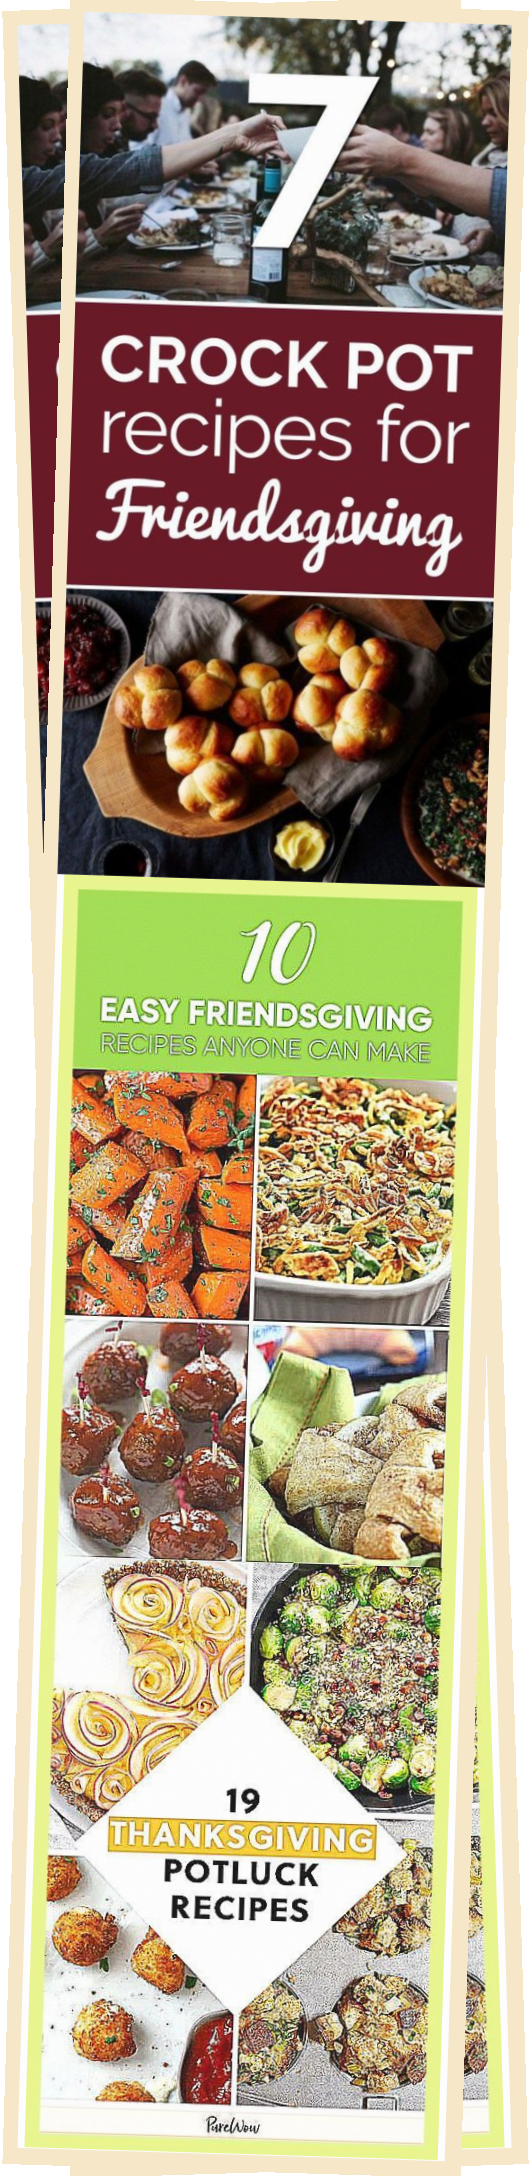 12 Friendsgiving Food Ideas To Make This Years Party Your Best Yet